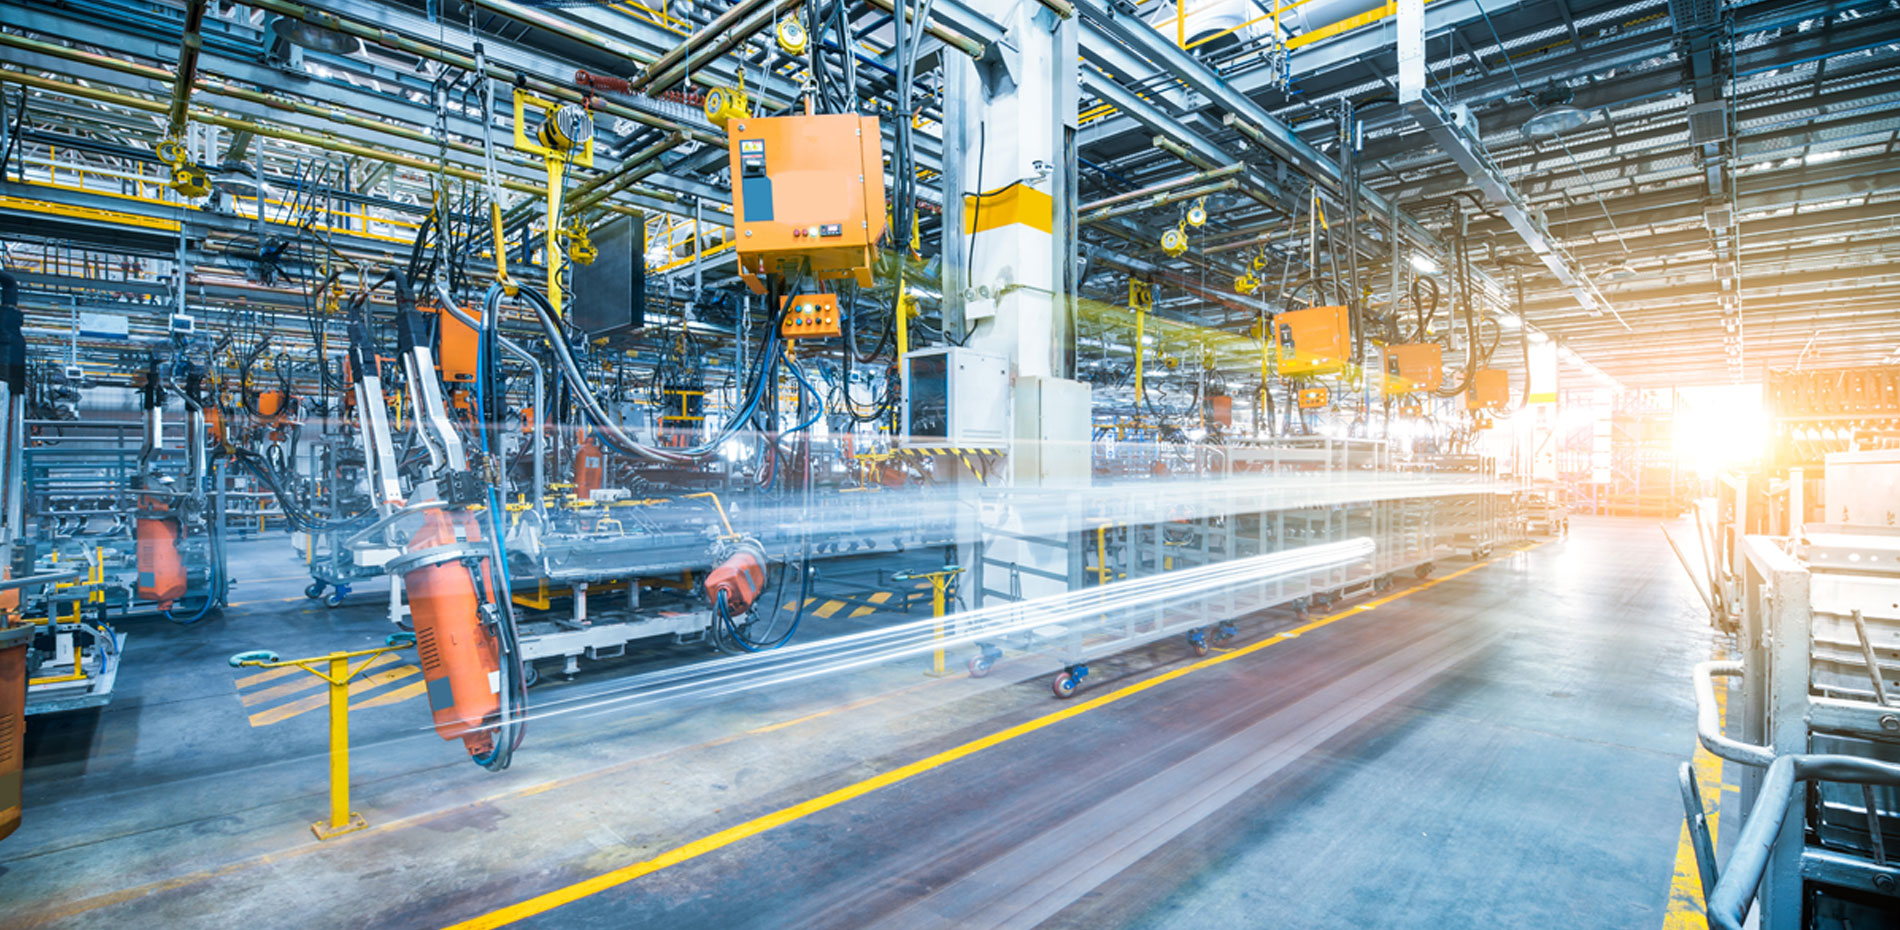 Snapshot of factory in motion